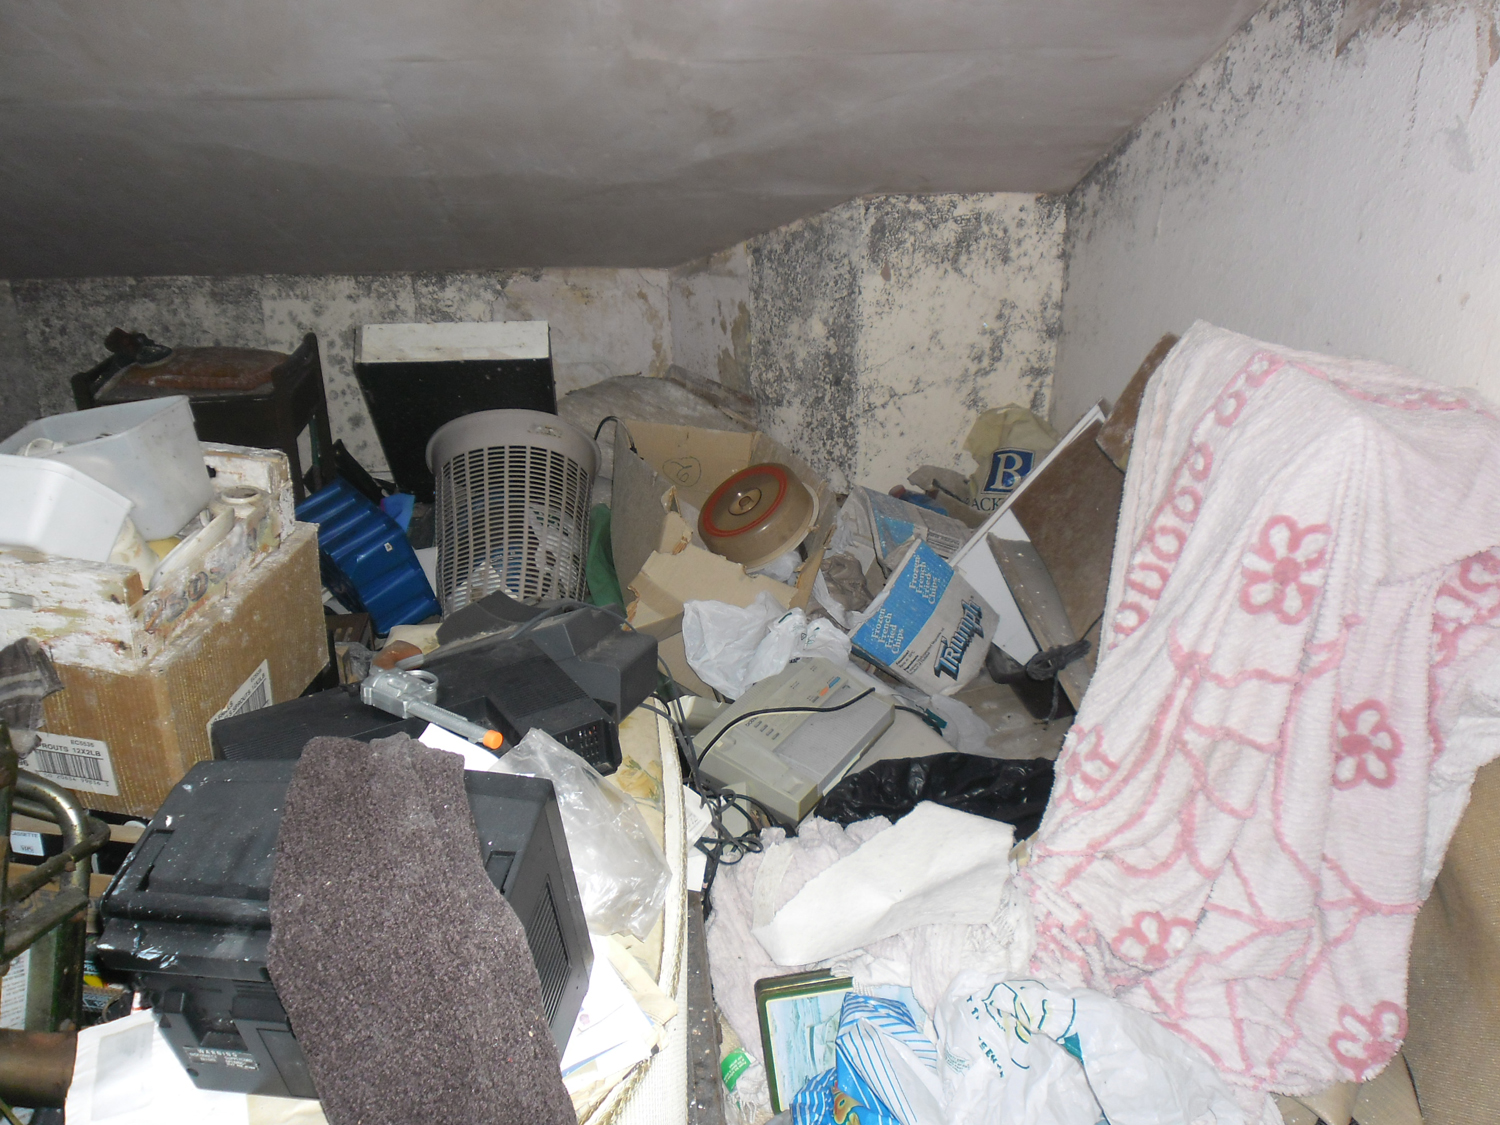 Tonnes of hoarded material cleared from Wirral homes in a bid to prevent fires